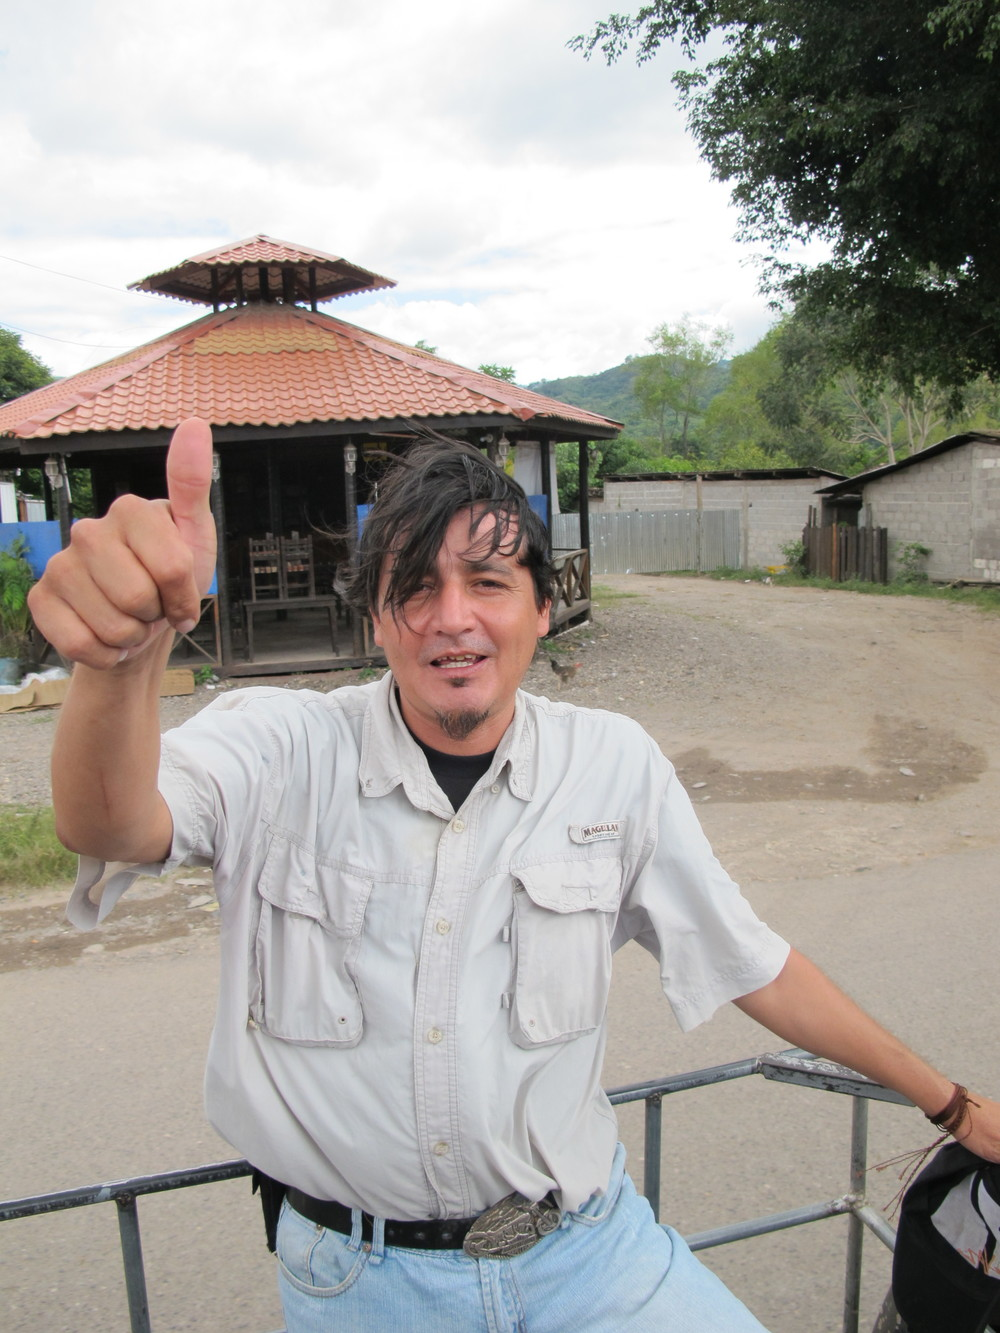 Our guide, Juan